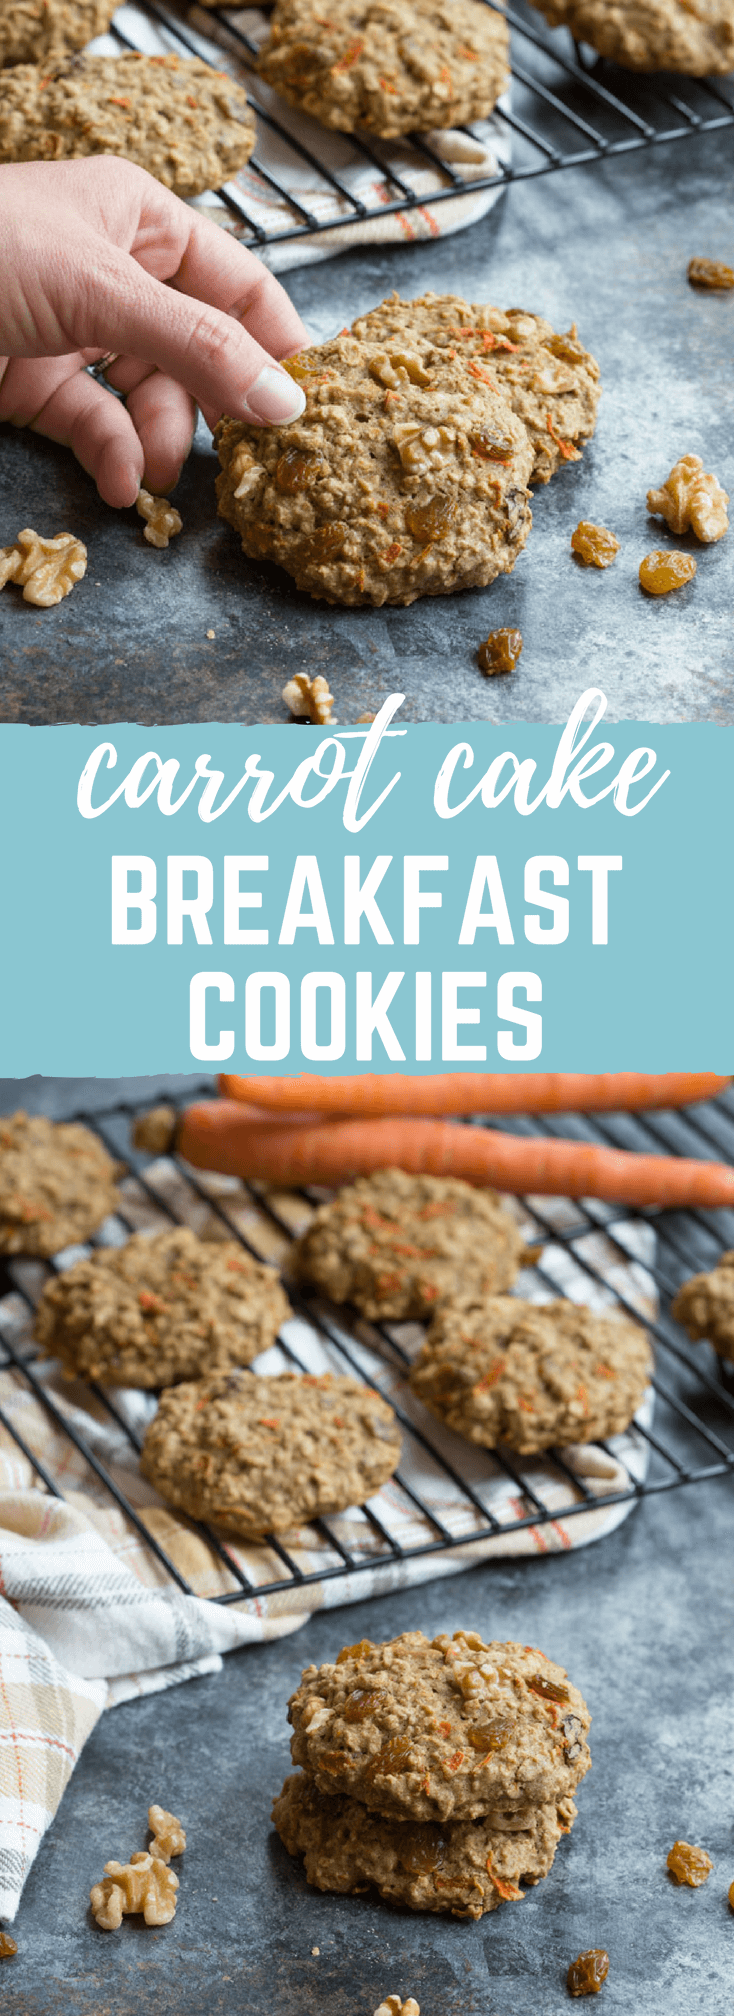 These Carrot Cake Breakfast Cookies are made with sweet carrots, oats, whole wheat flour, maple syrup, golden raisins and walnuts. Love all the healthy fats, whole grains, and veggies in these cookies!